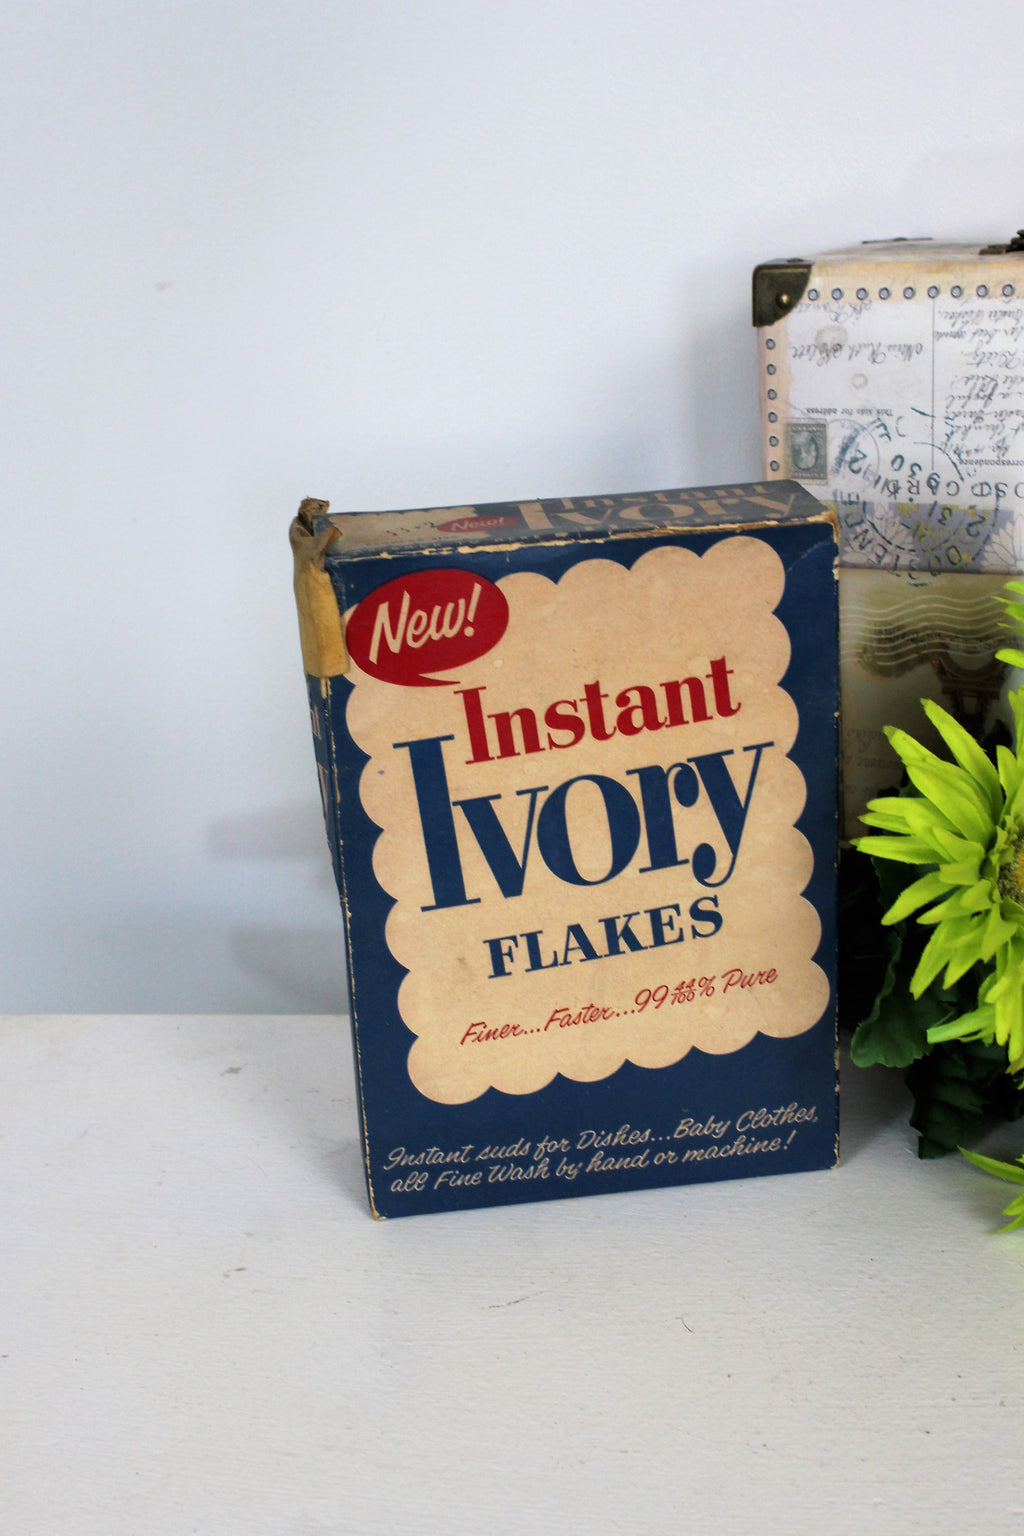 Vintage 1940s Instant Ivory Flakes Soap Box, Still 3/4 Full